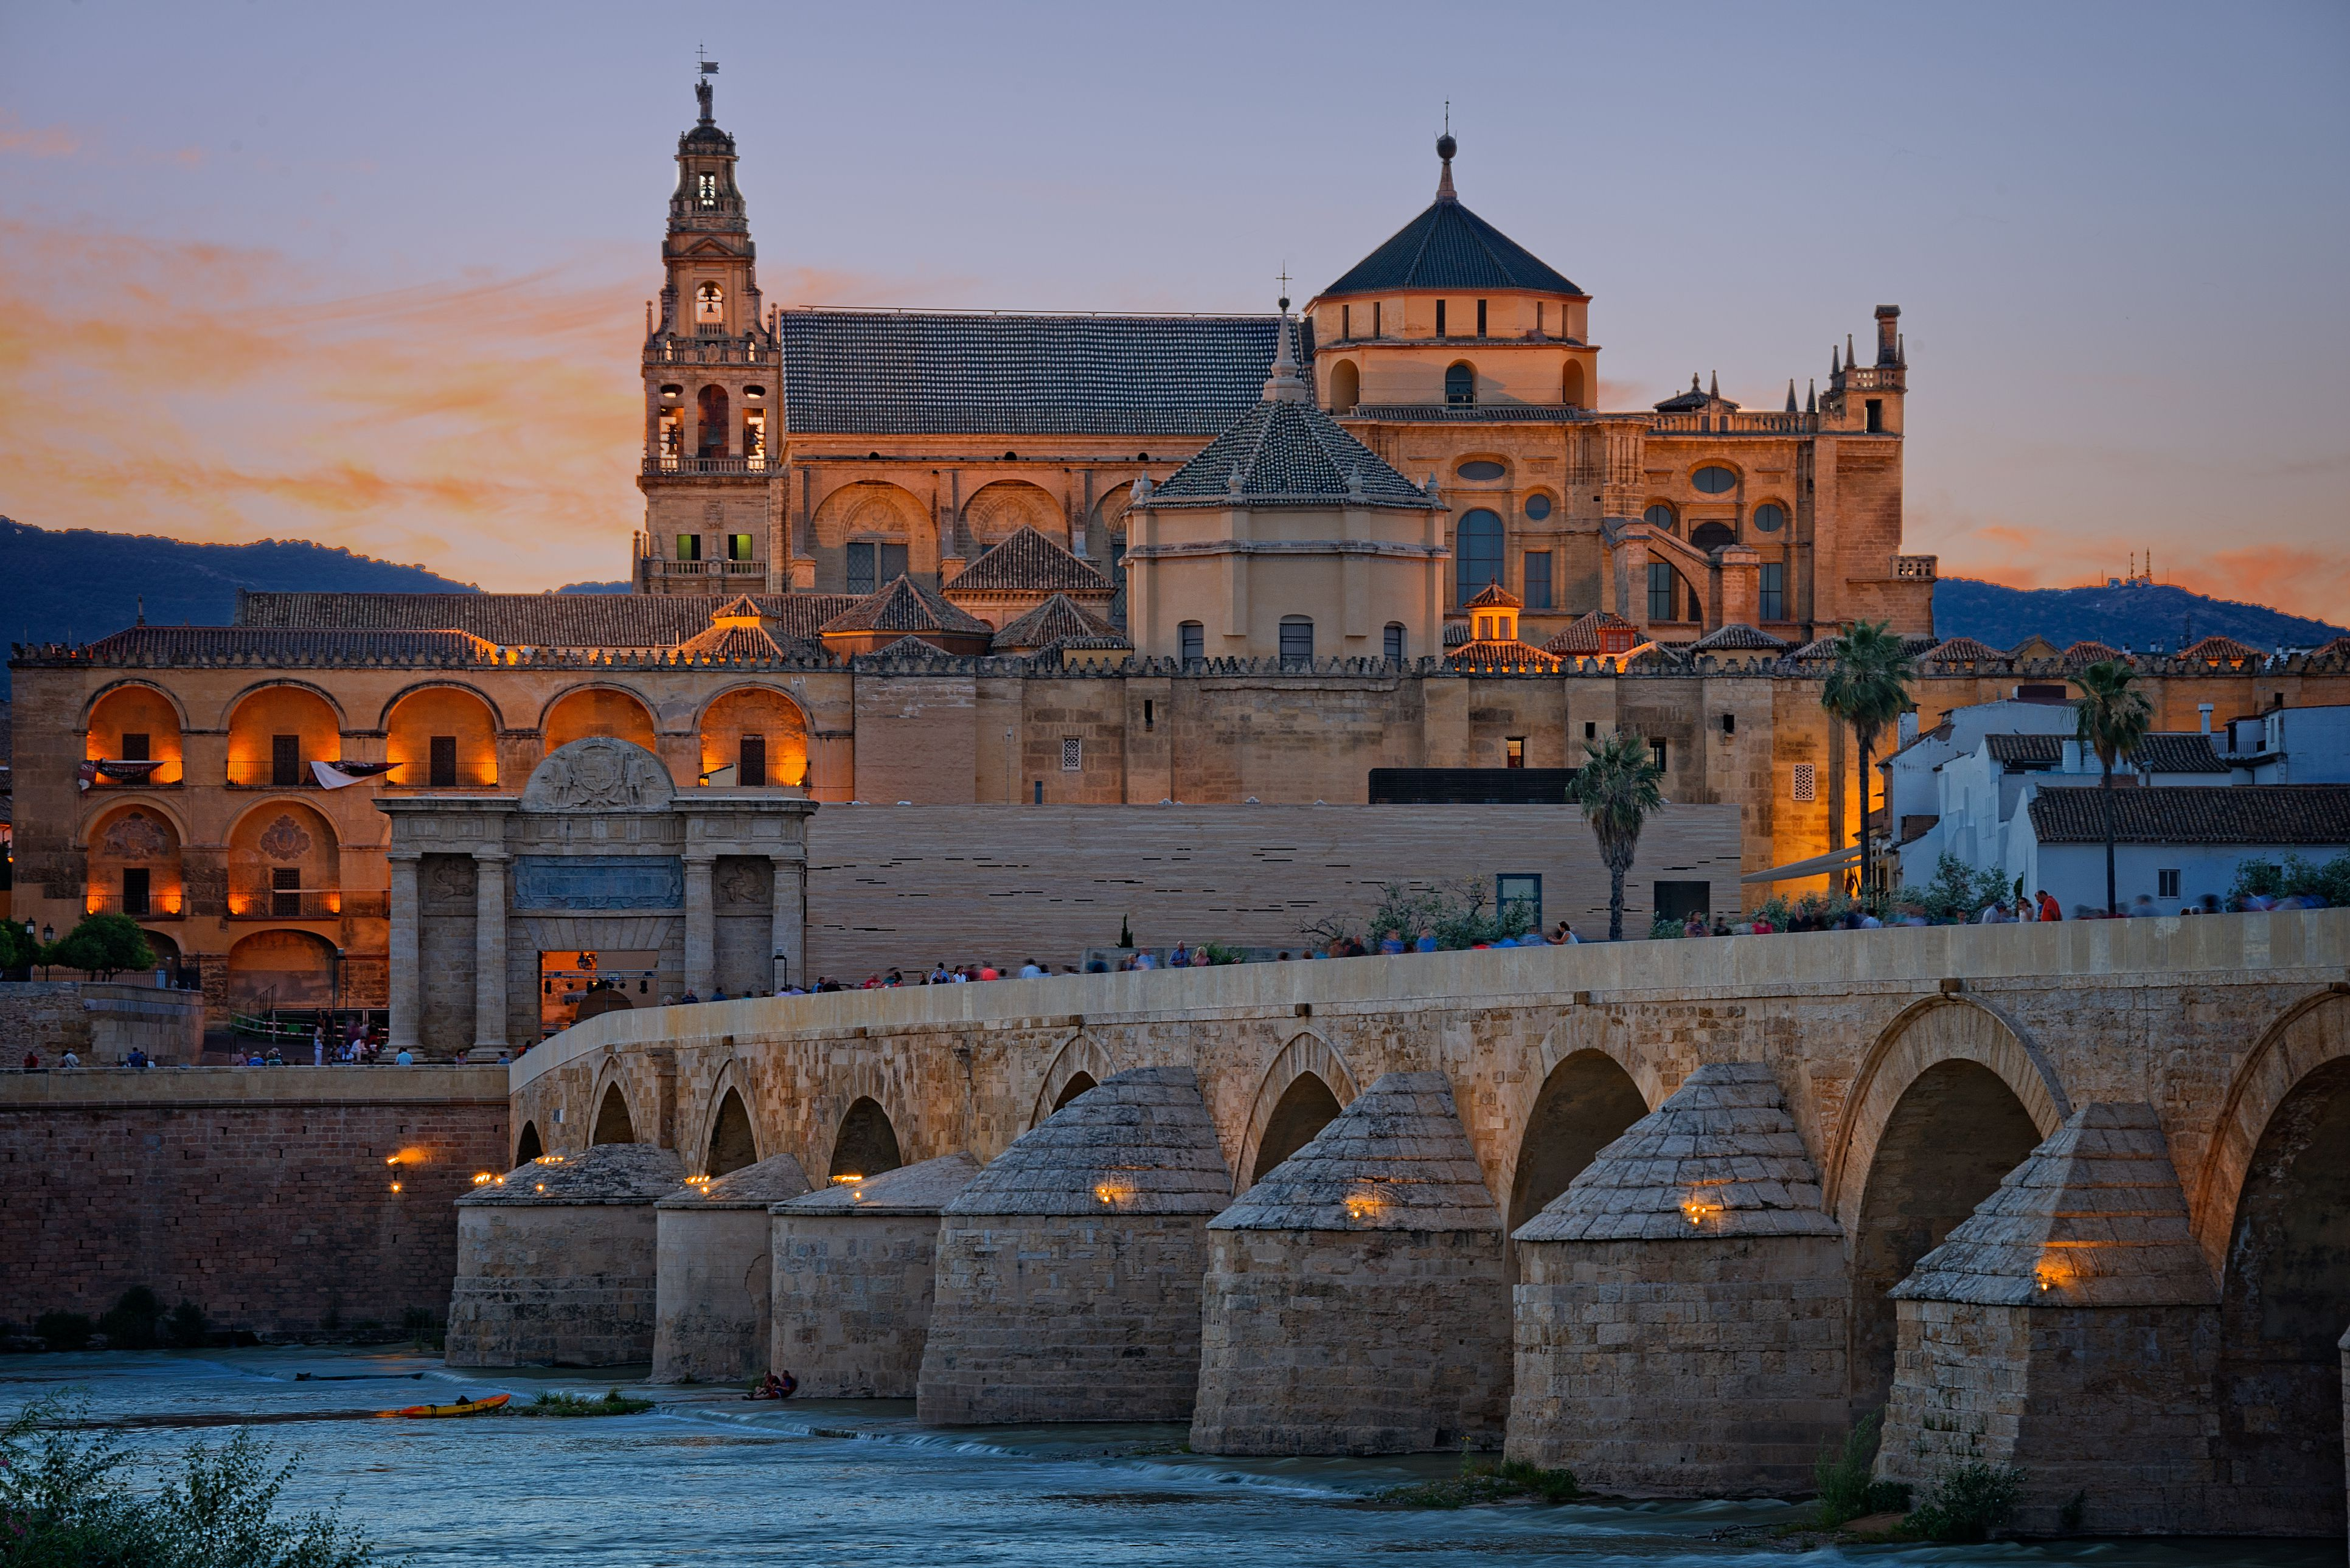 Twilight view of Great mosque of Cordoba